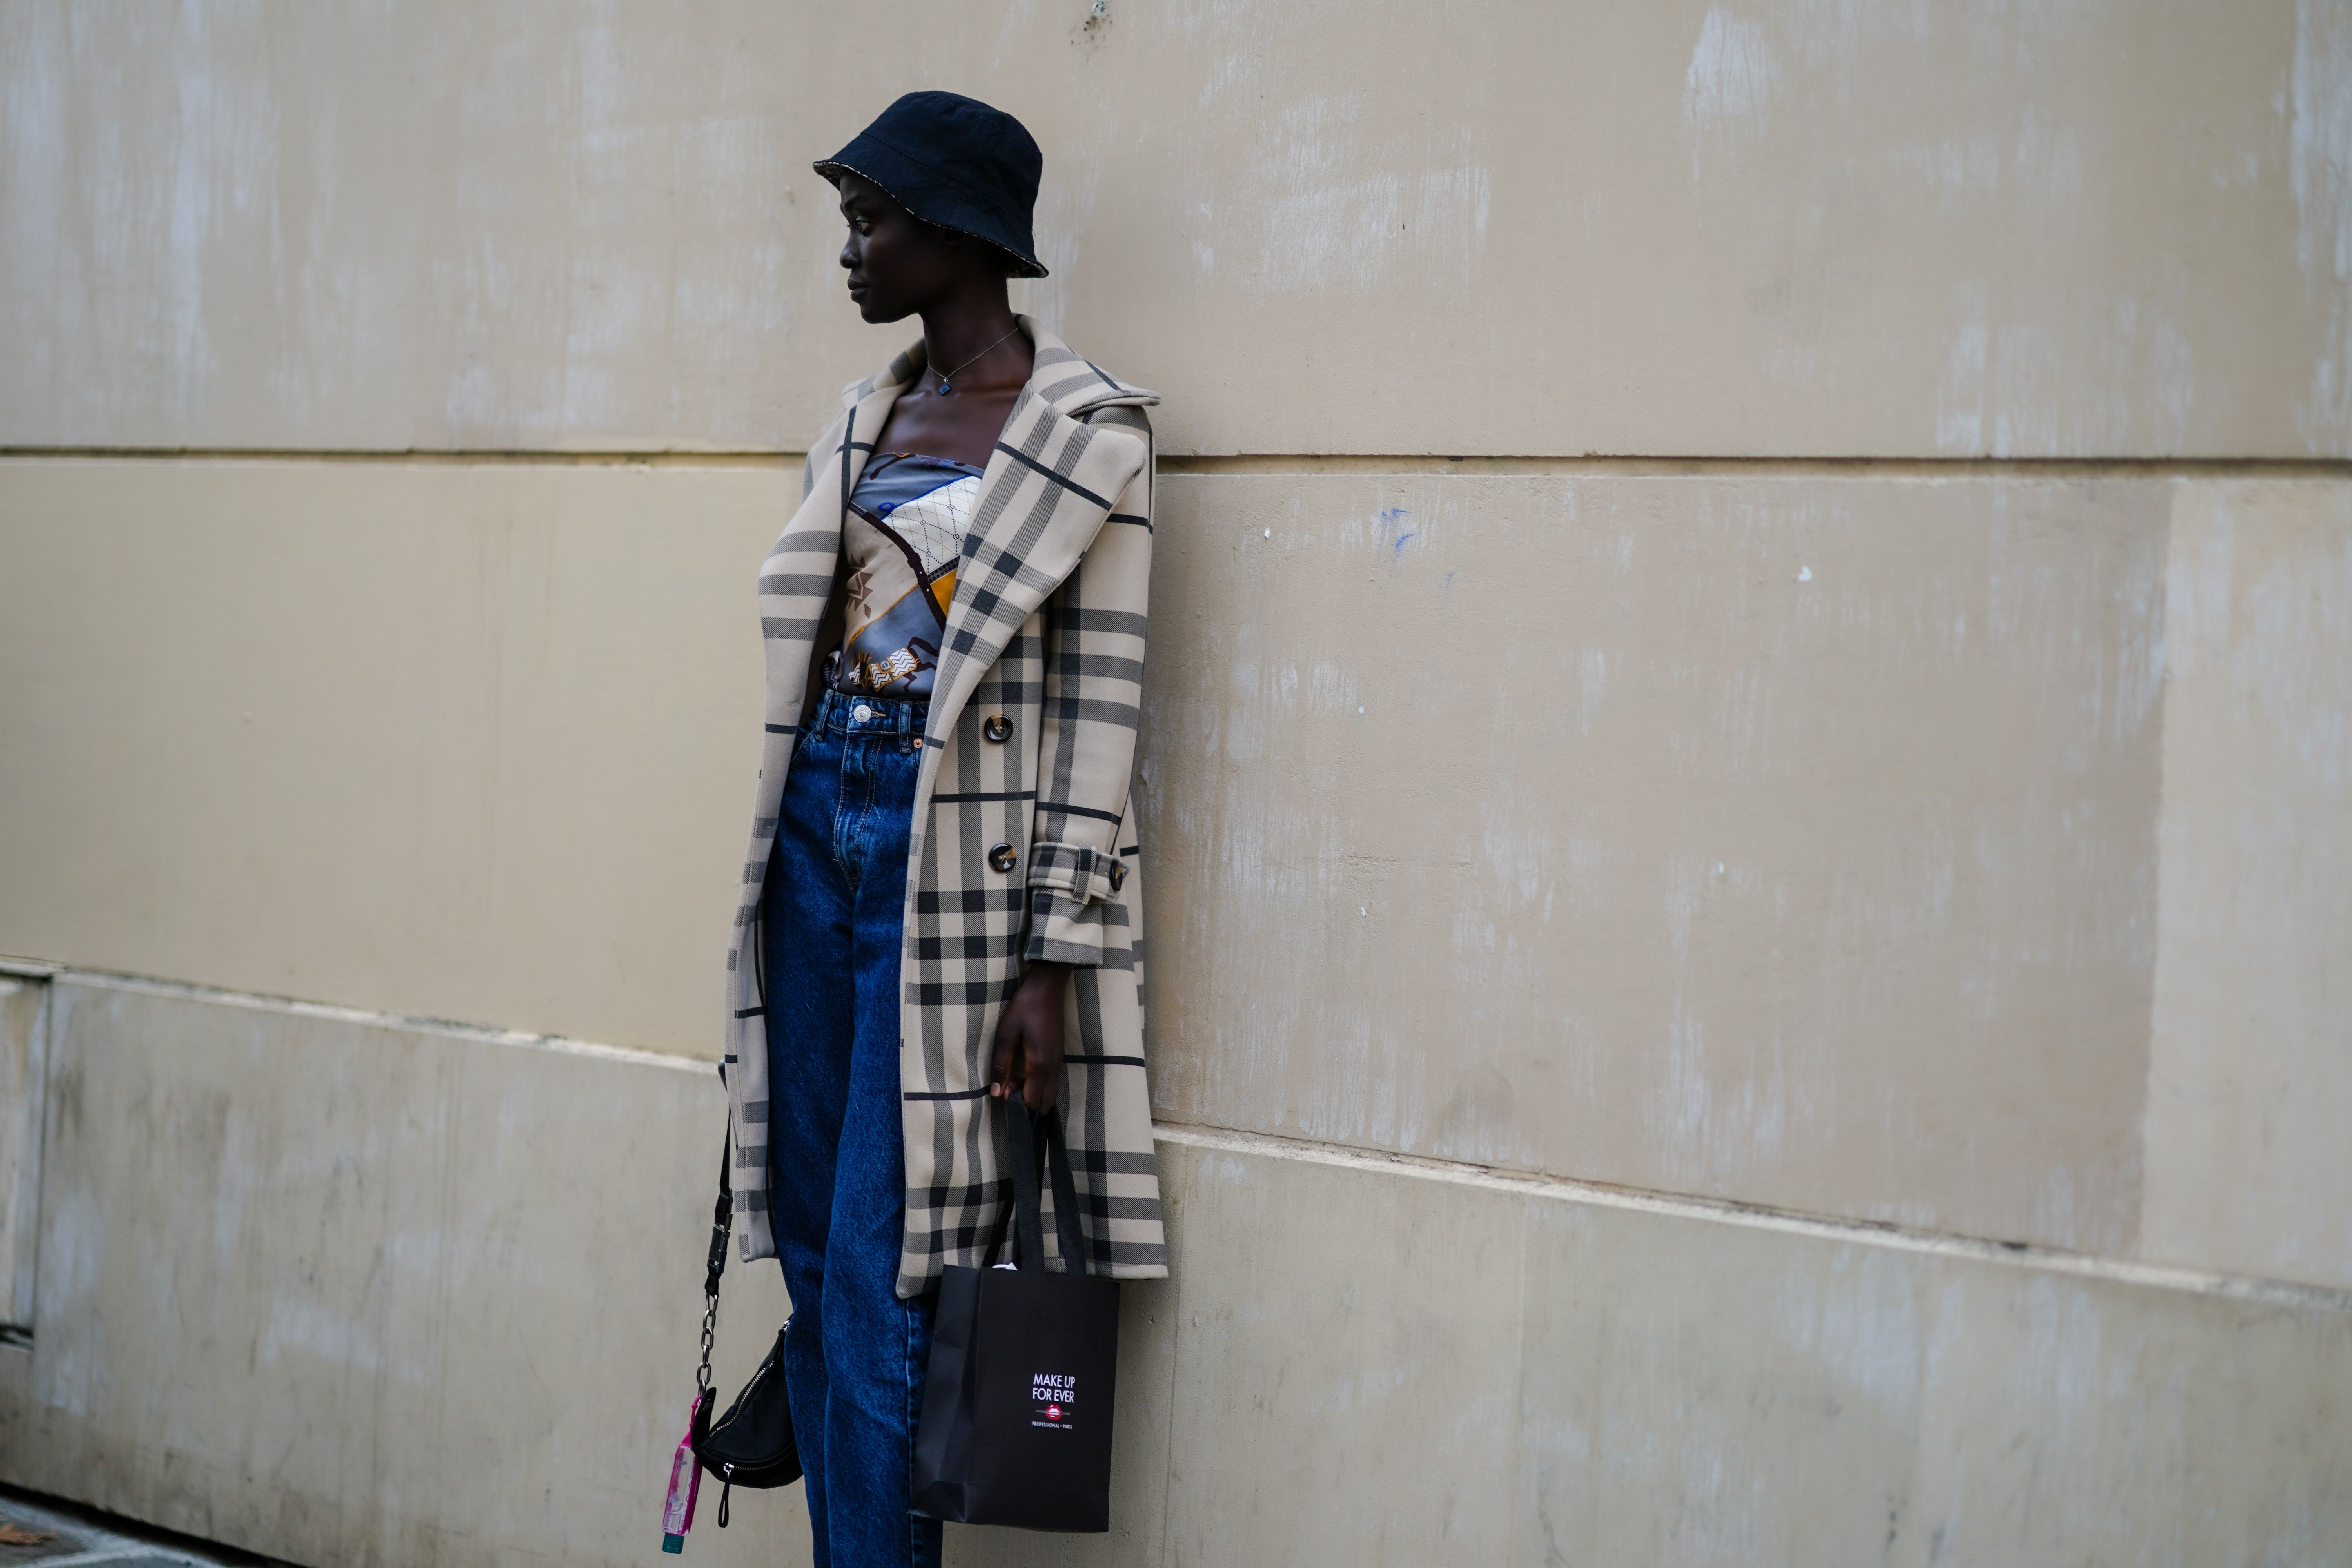 Fall Fashion 2020 New Fall Looks and Fashion Trends